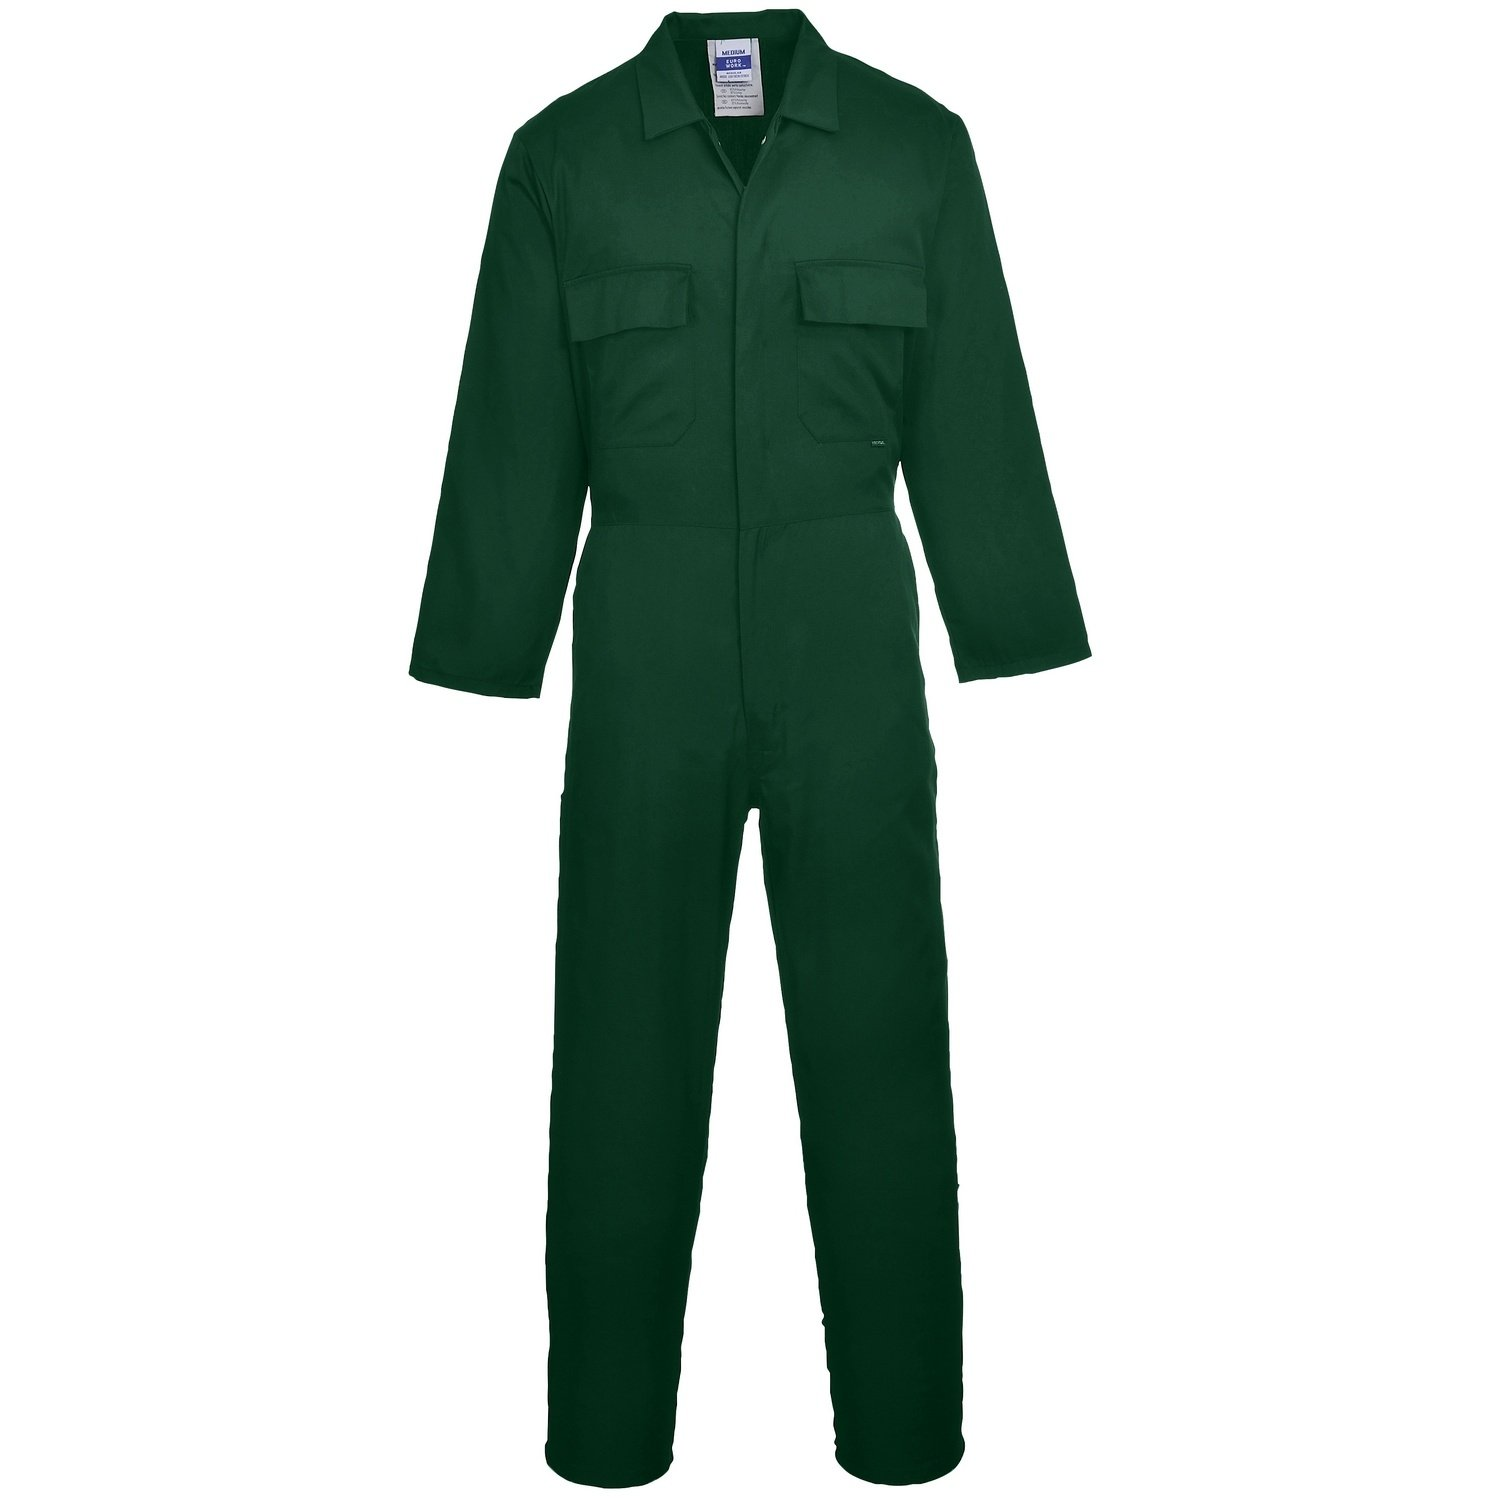 Euro Work Boilersuit Coverall Overall Stud Front Elastic Waist Workwear XS - 5XL[M] [Reg 31''] [Bottle Green] Universal Textiles S999BGRM